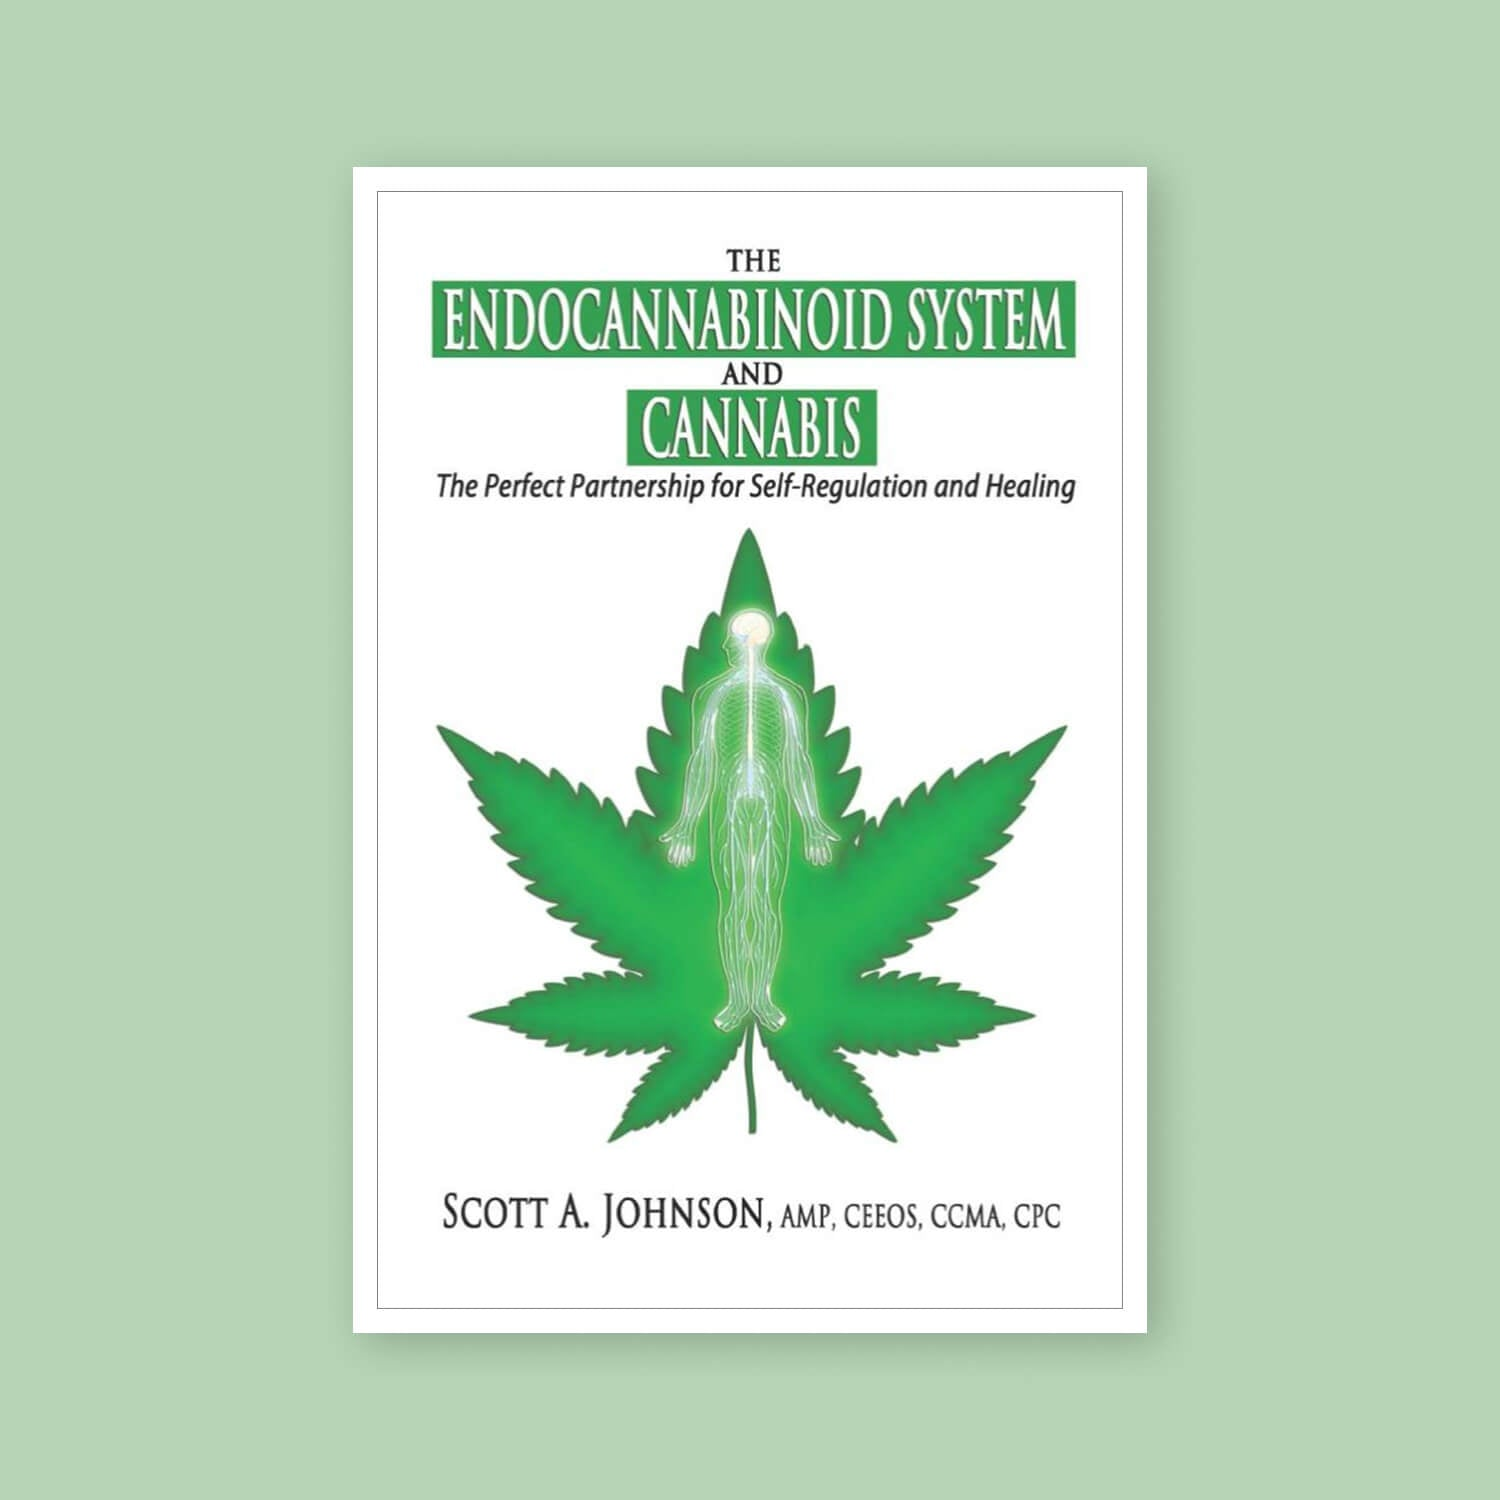 The Endocannabinoid System and Cannabis - Goldleaf Bookshelf